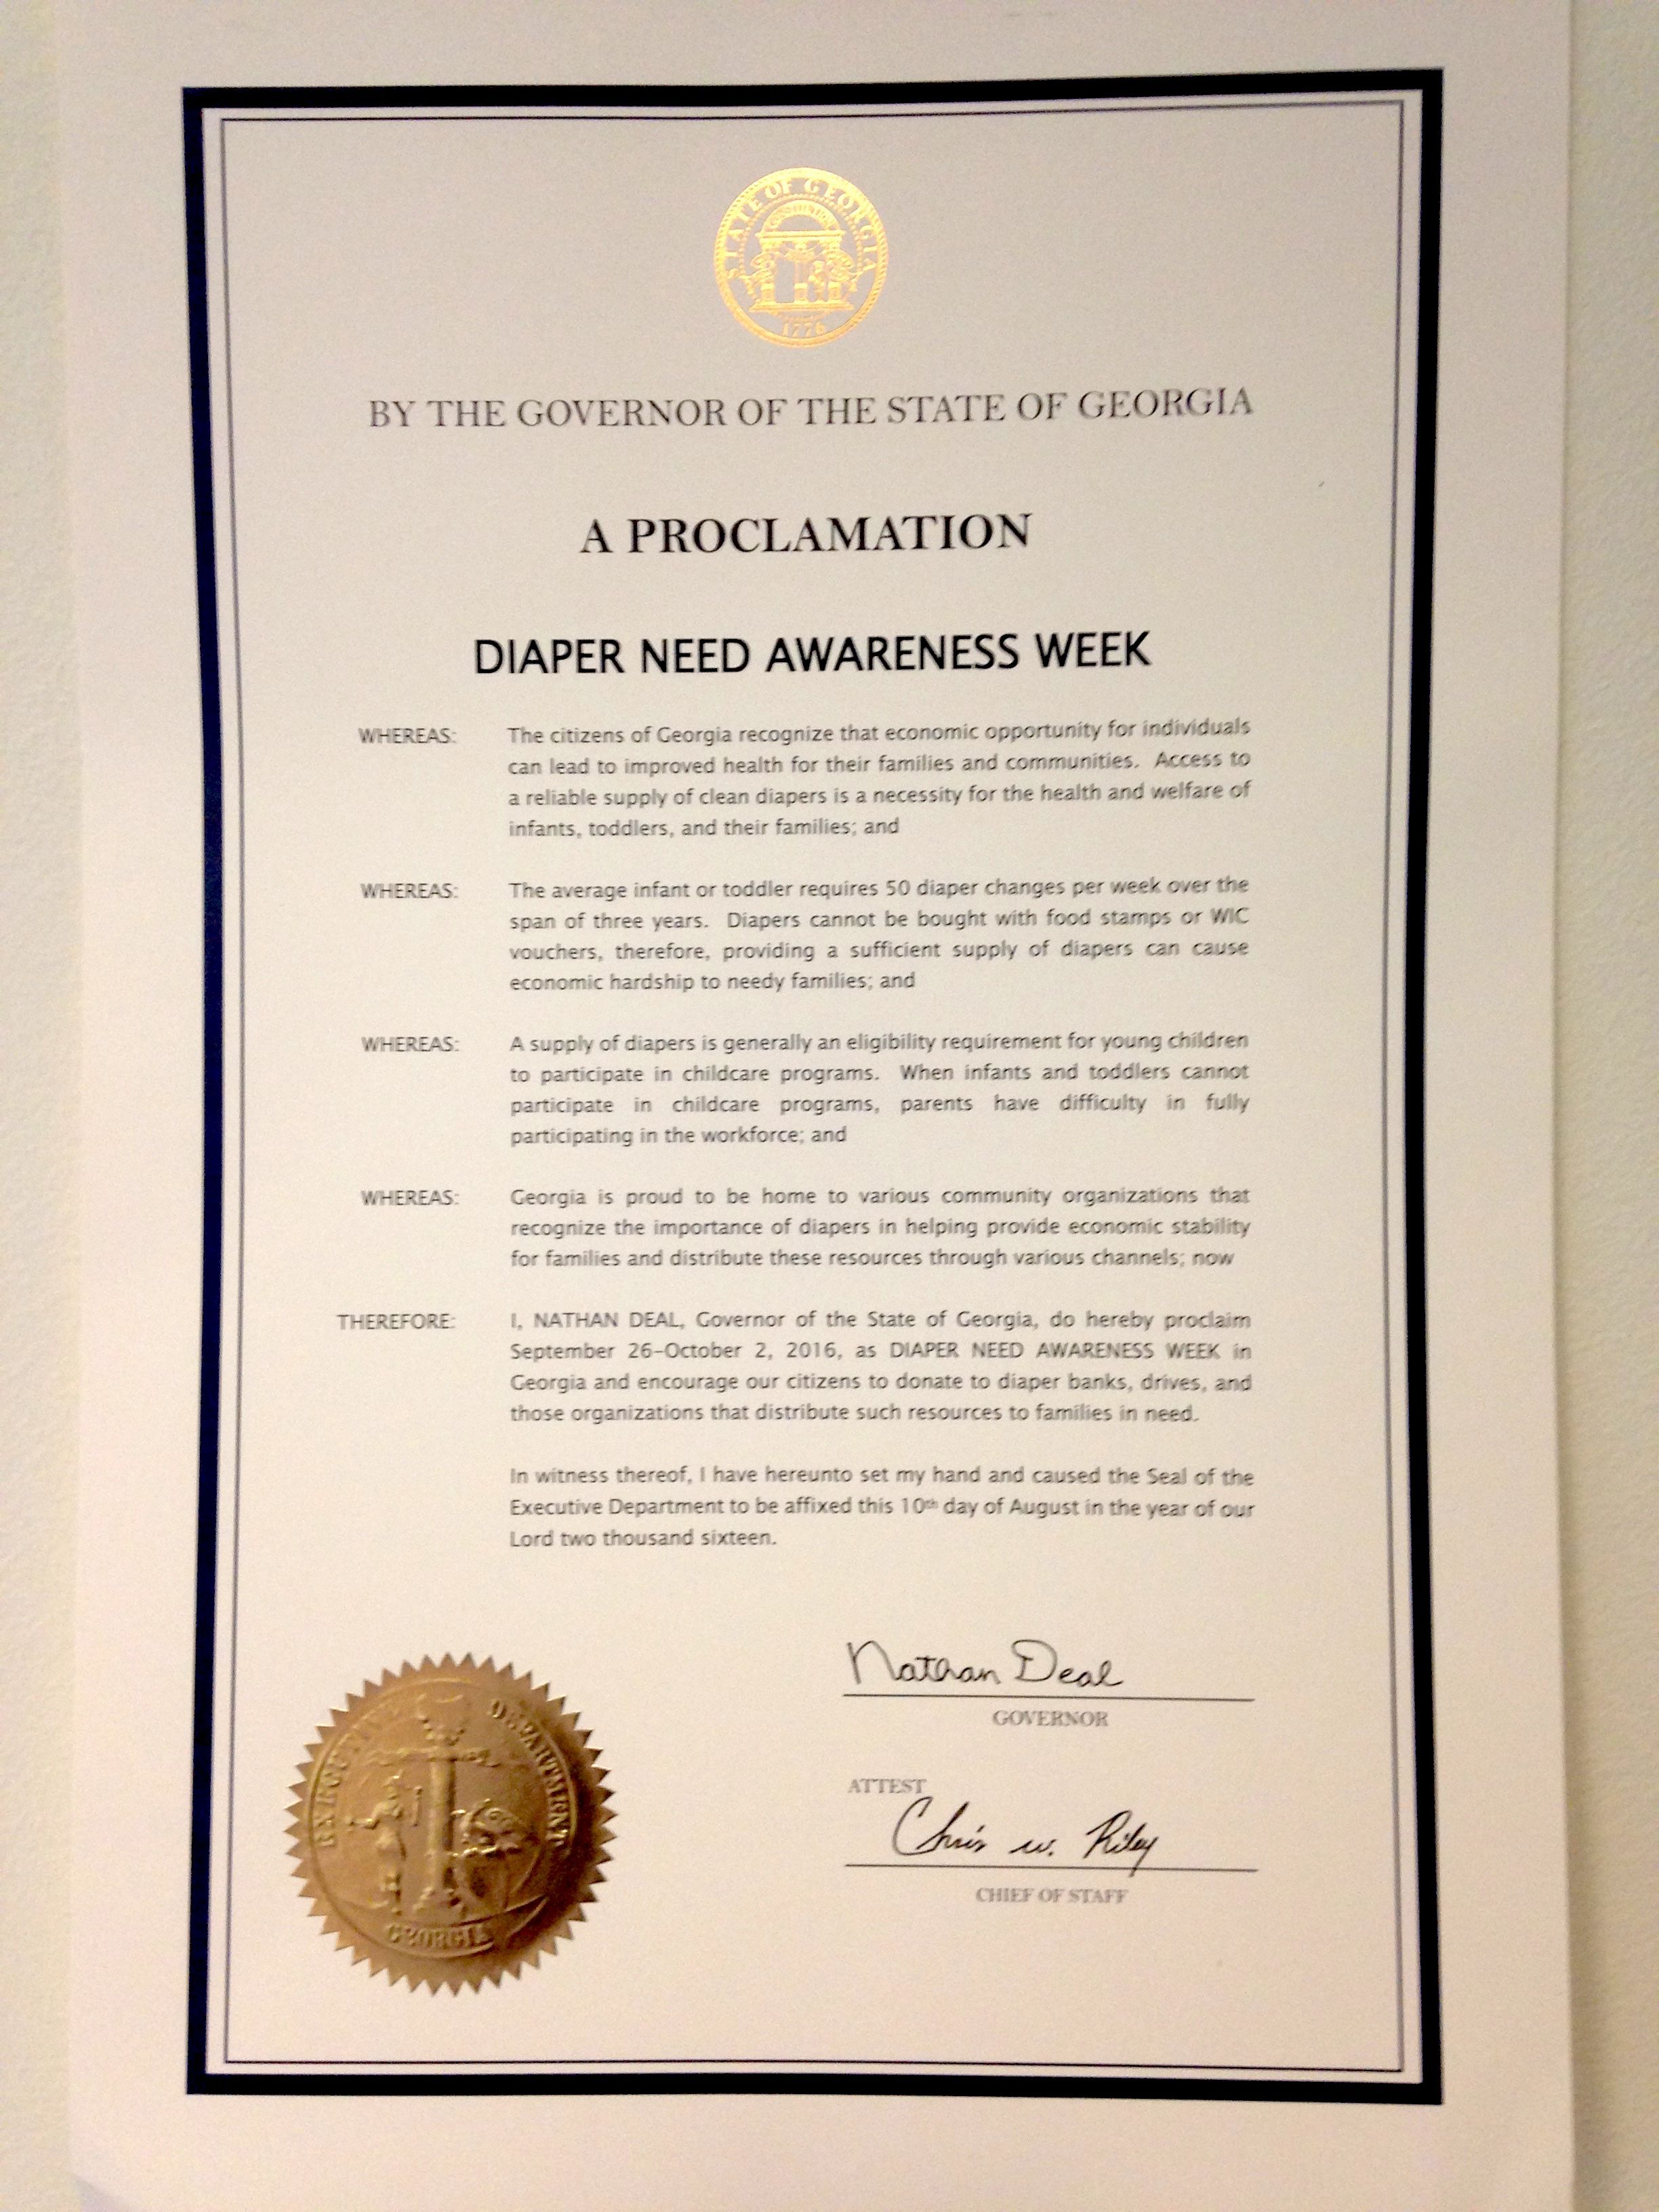 Georgia Governor Nathan Deal's proclamation recognizing Diaper Need Awareness Week (Sept. 26 - Oct. 2, 2016) #DiaperNeed www.diaperneed.org